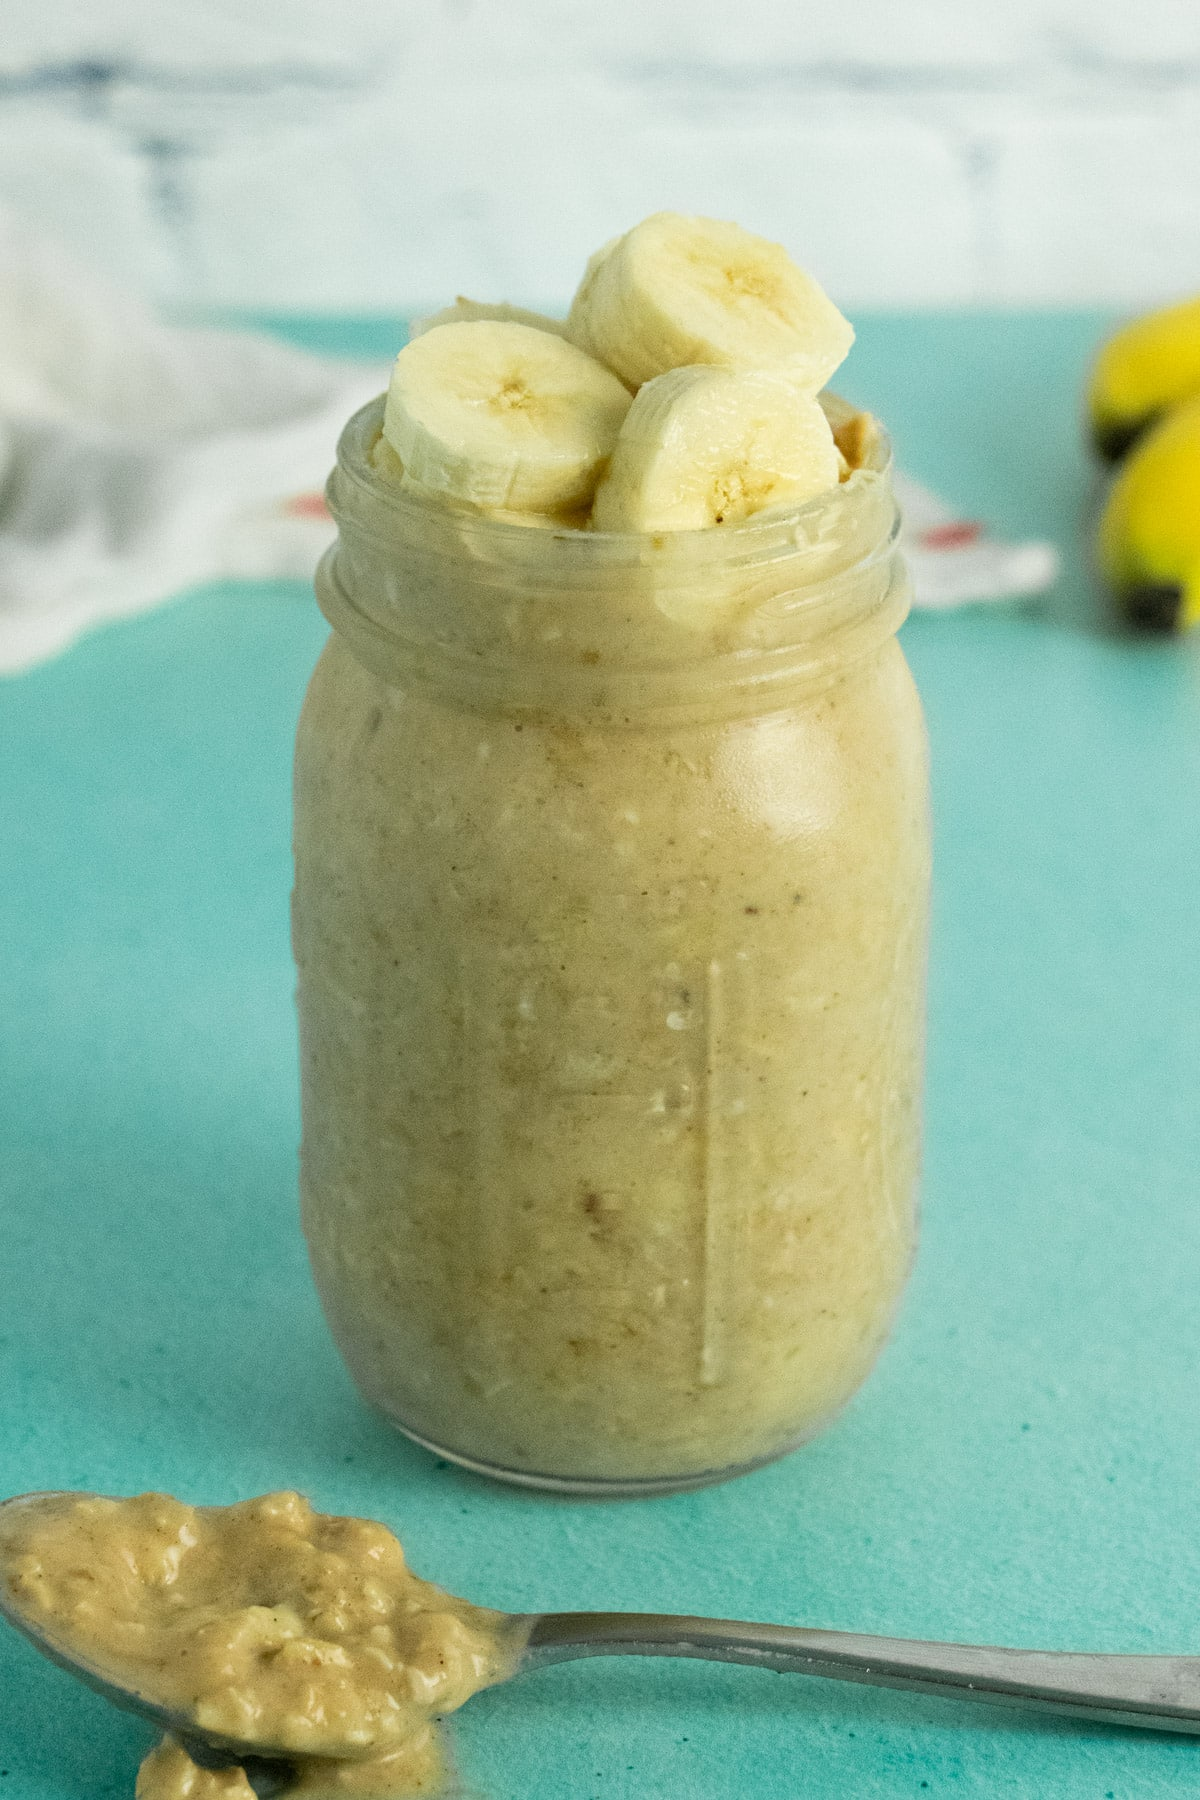 mason jar of peanut butter banana overnight oats with bananas and a tea towel in the background